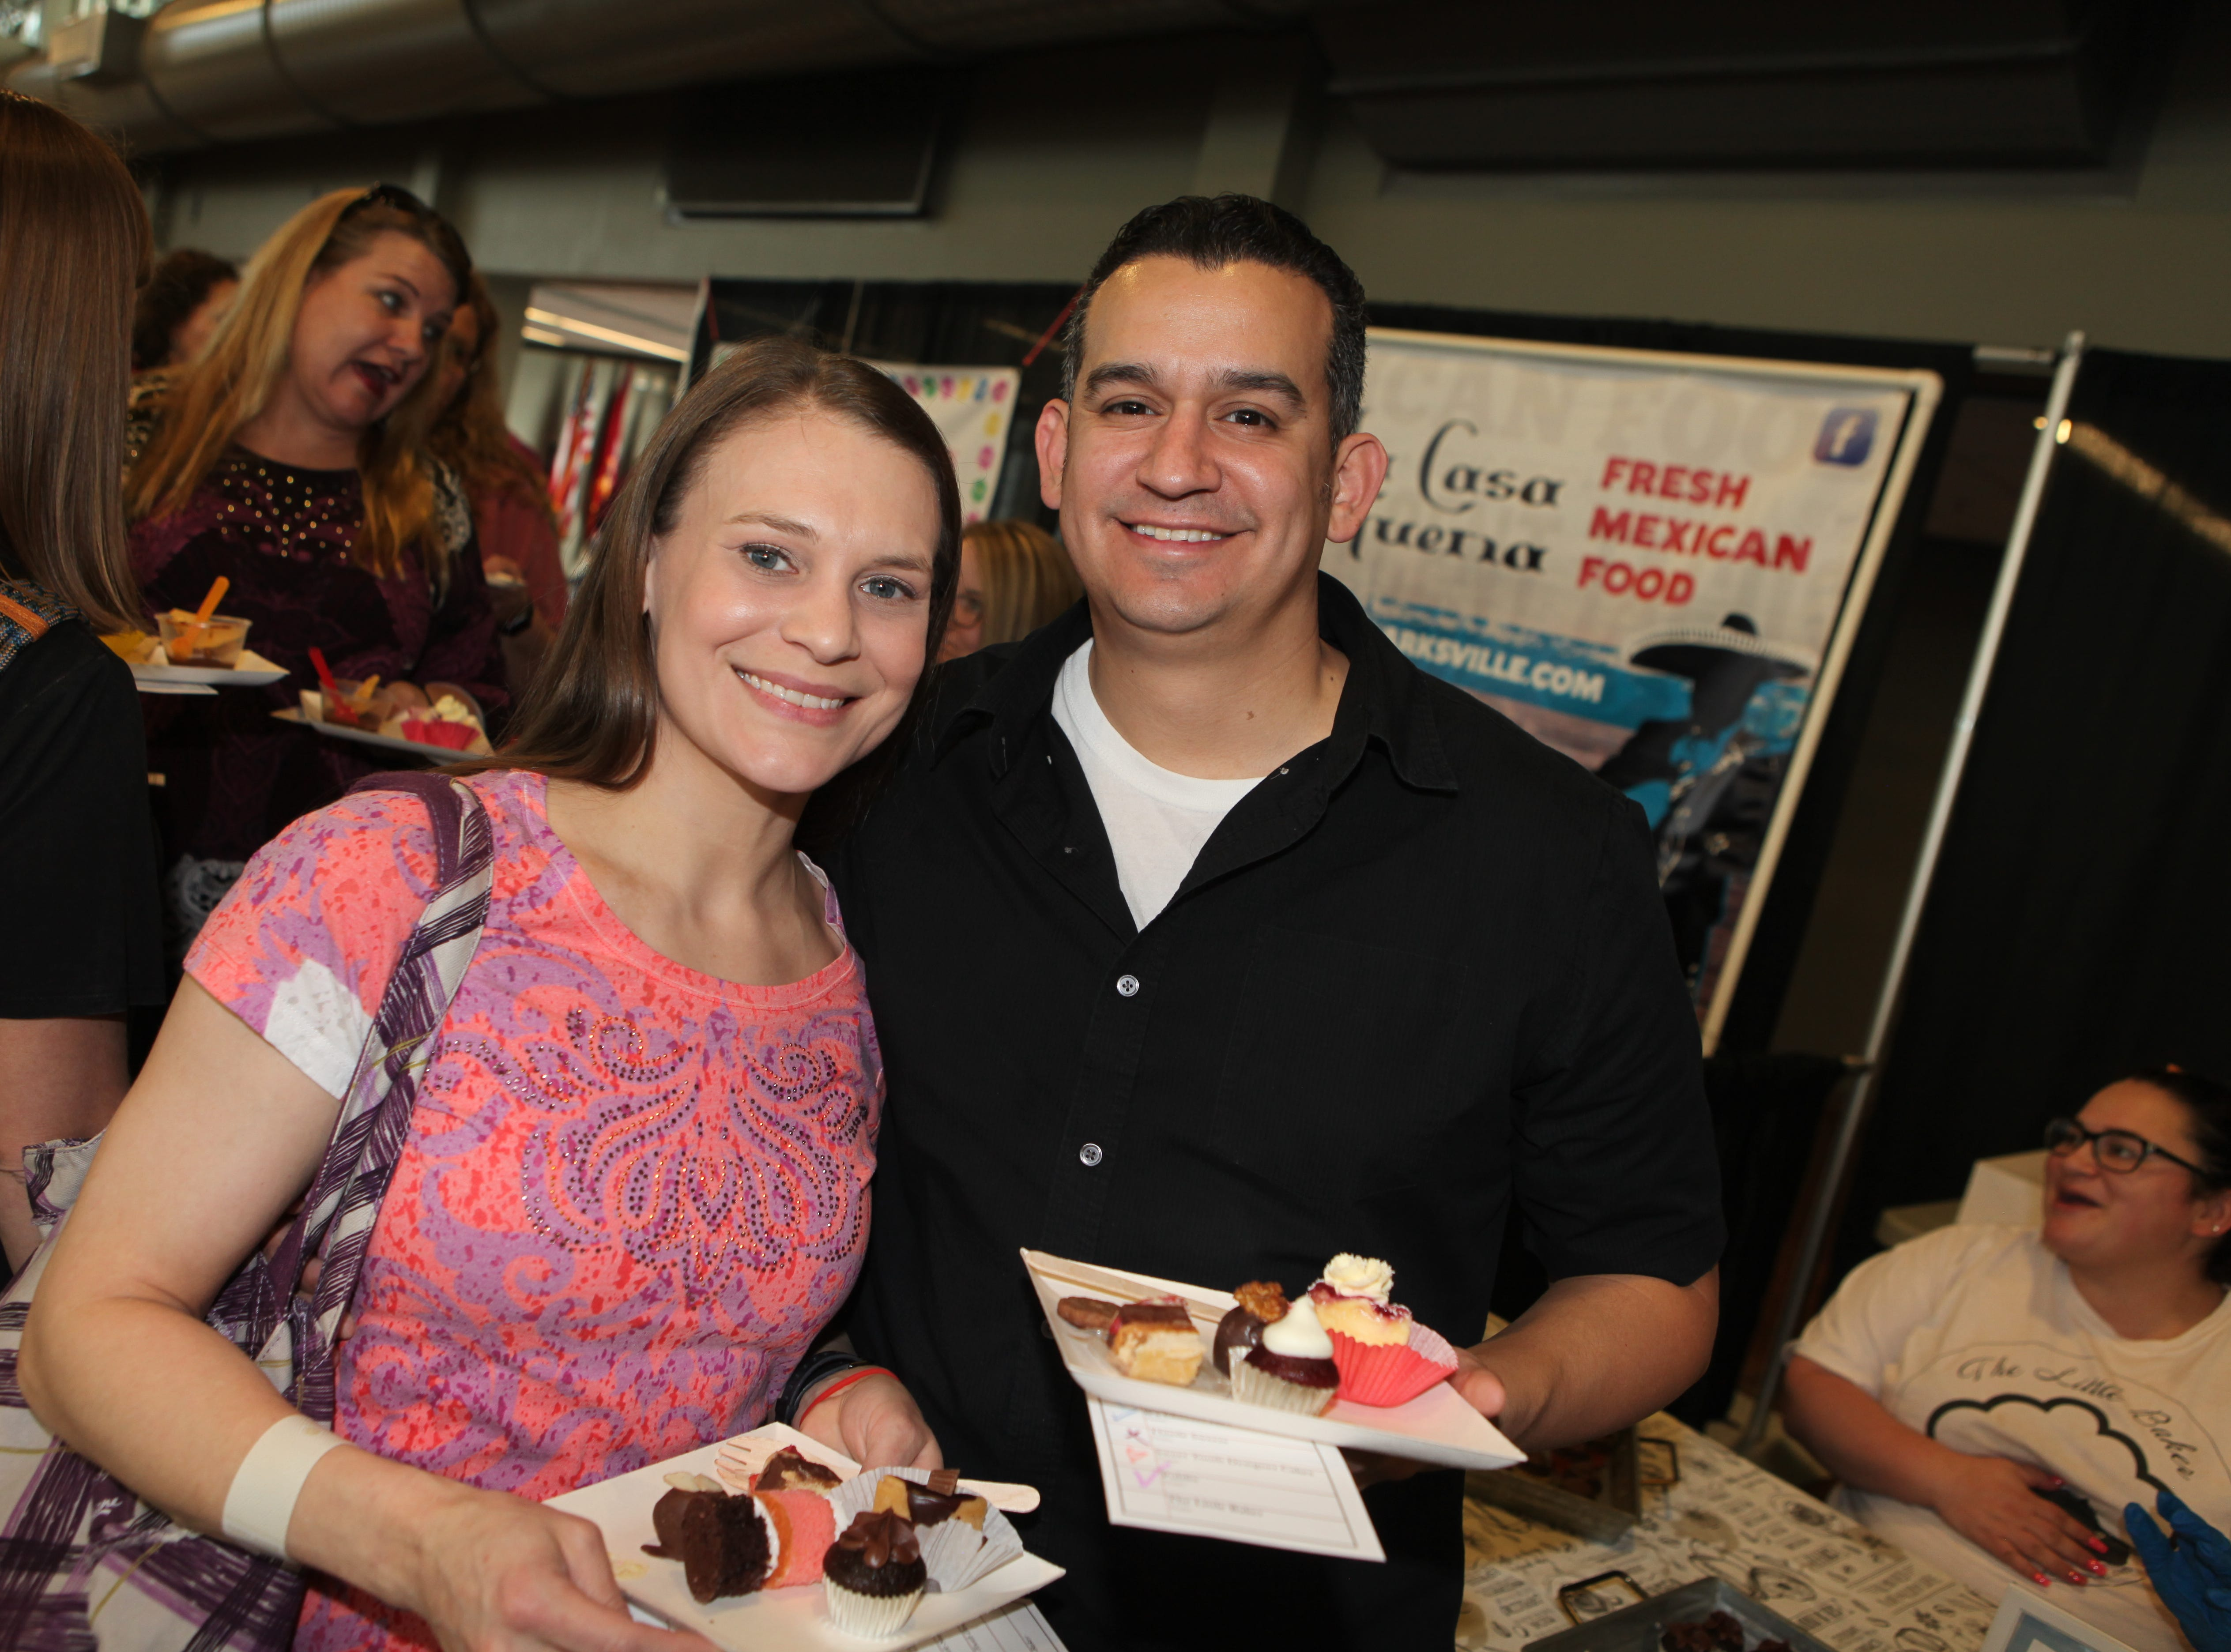 Melissa Glenn and Bobby Morales smile during the 7th Annual Chocolate Affair at Wilma Rudolph Event Center Saturday, February 2, 2019 . The sold-out event saw hundreds of guests enjoying chocolate creations from more than a dozen local and national vendors.